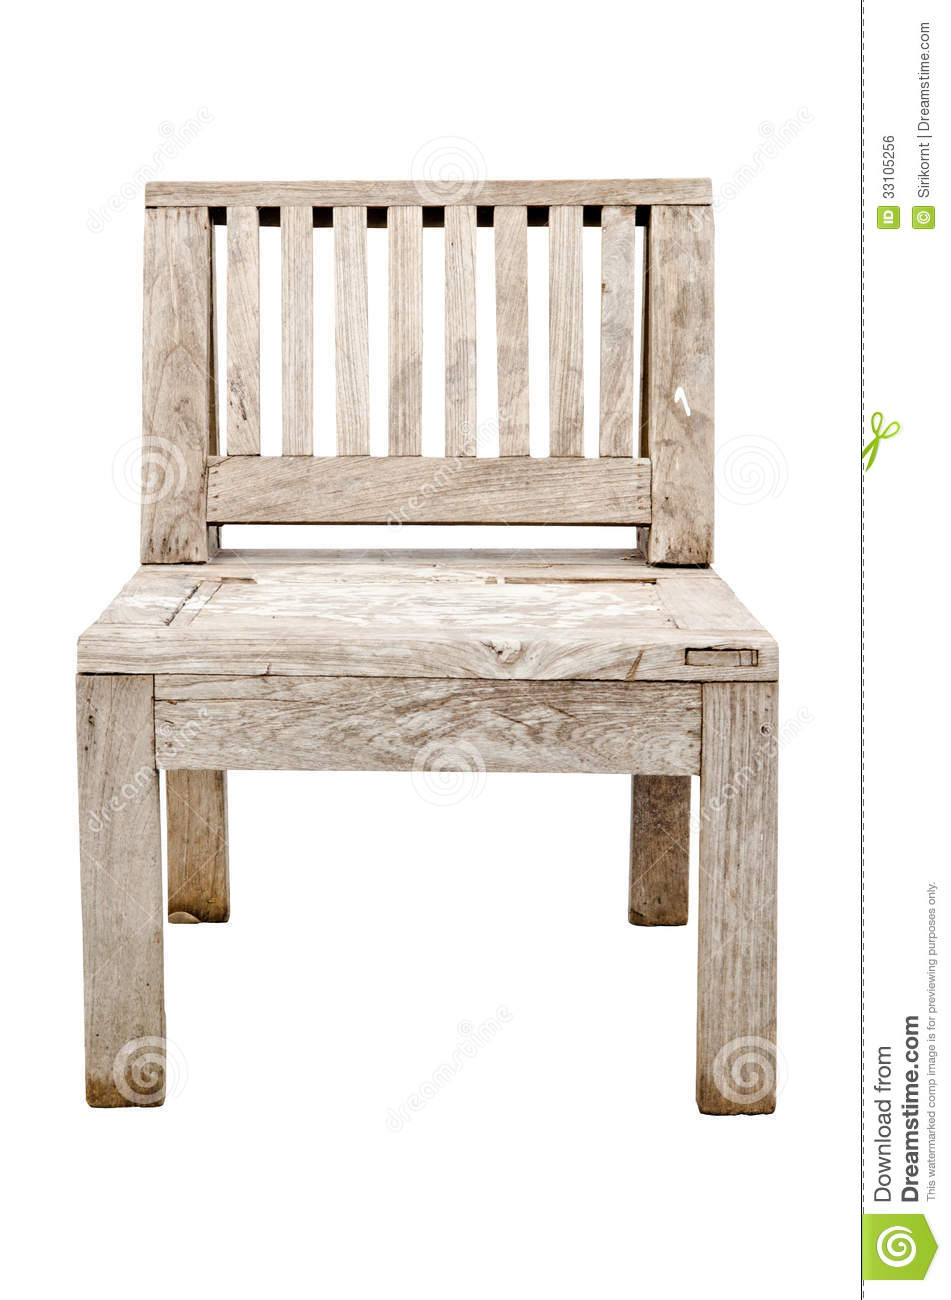 Vintage old wooden chair isolated on white background royalty free